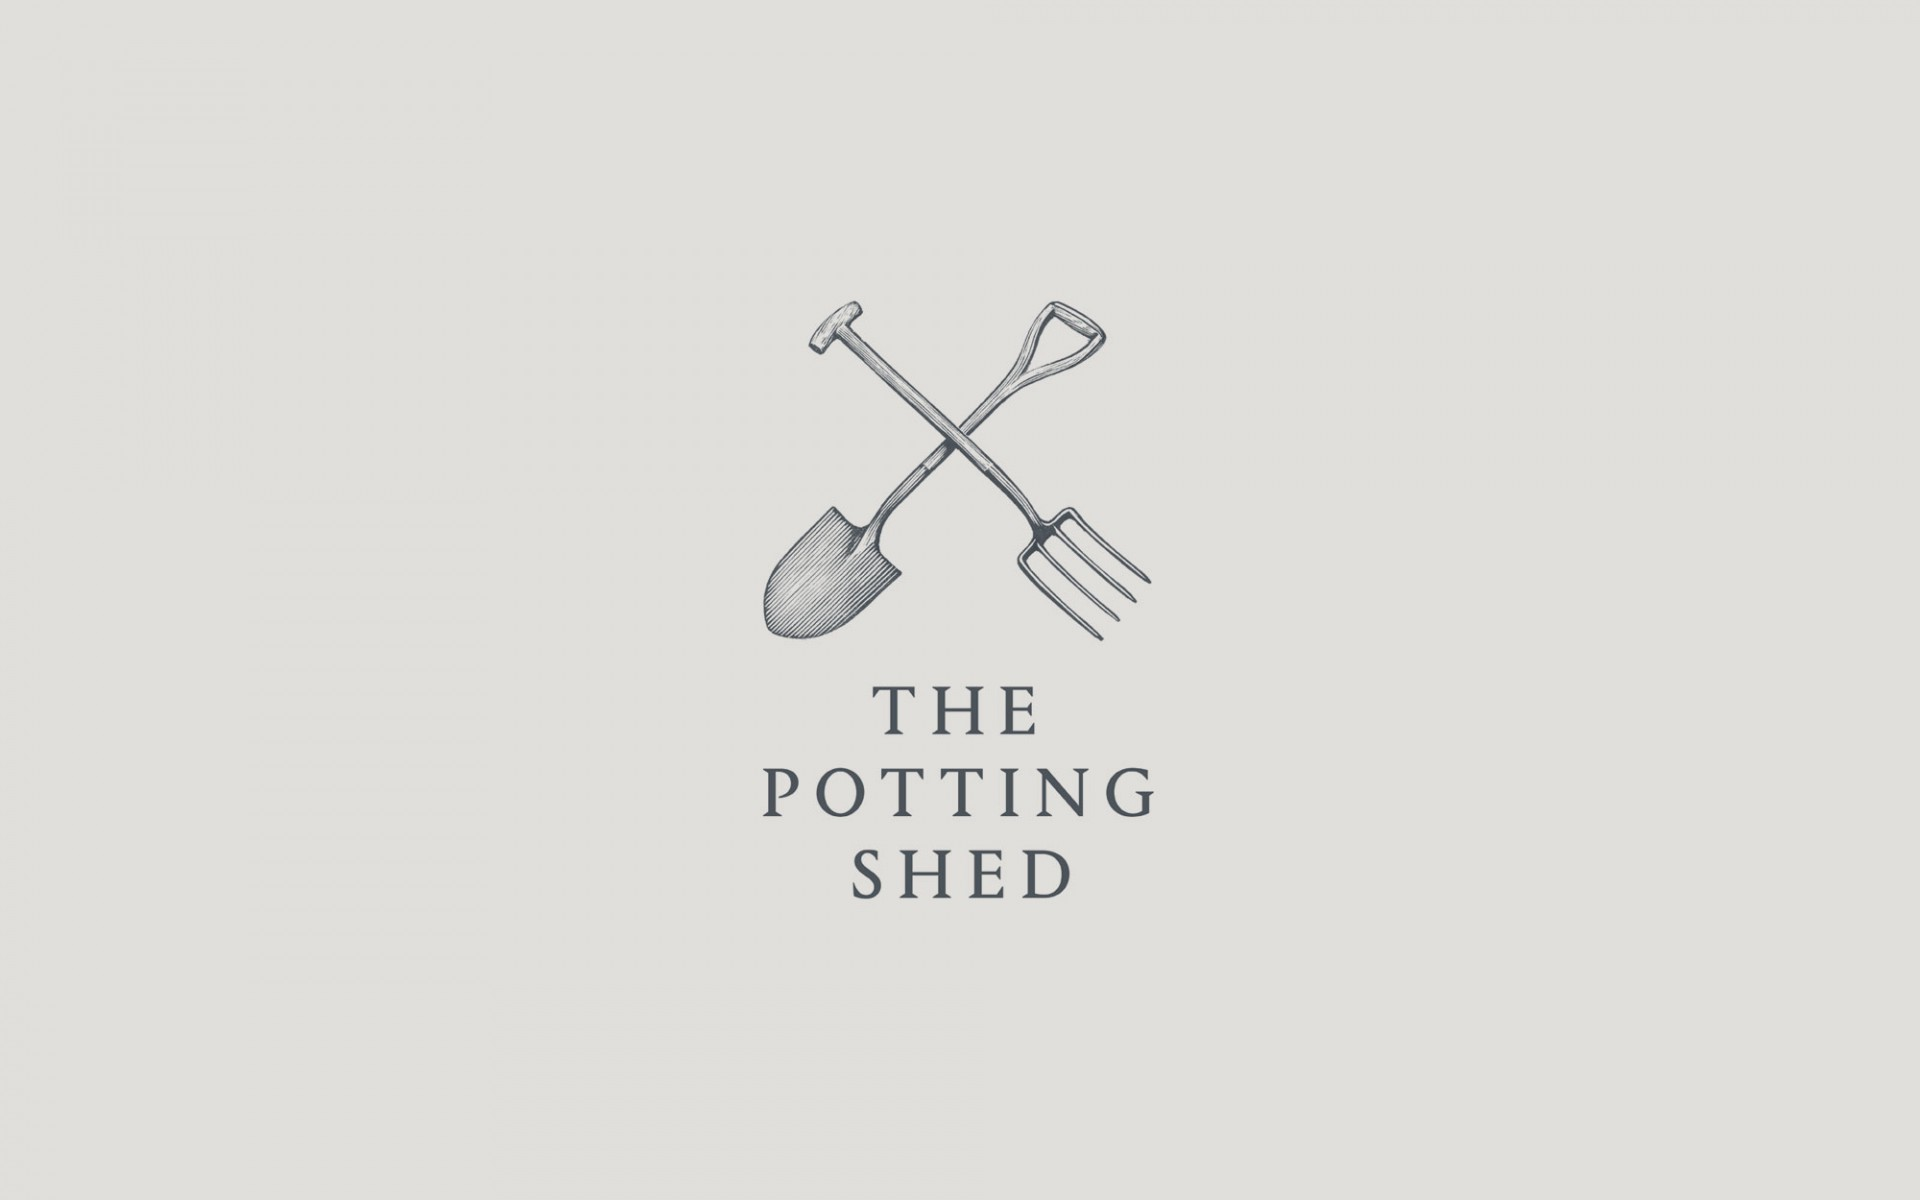 StudioBOWDEN The Potting Shed